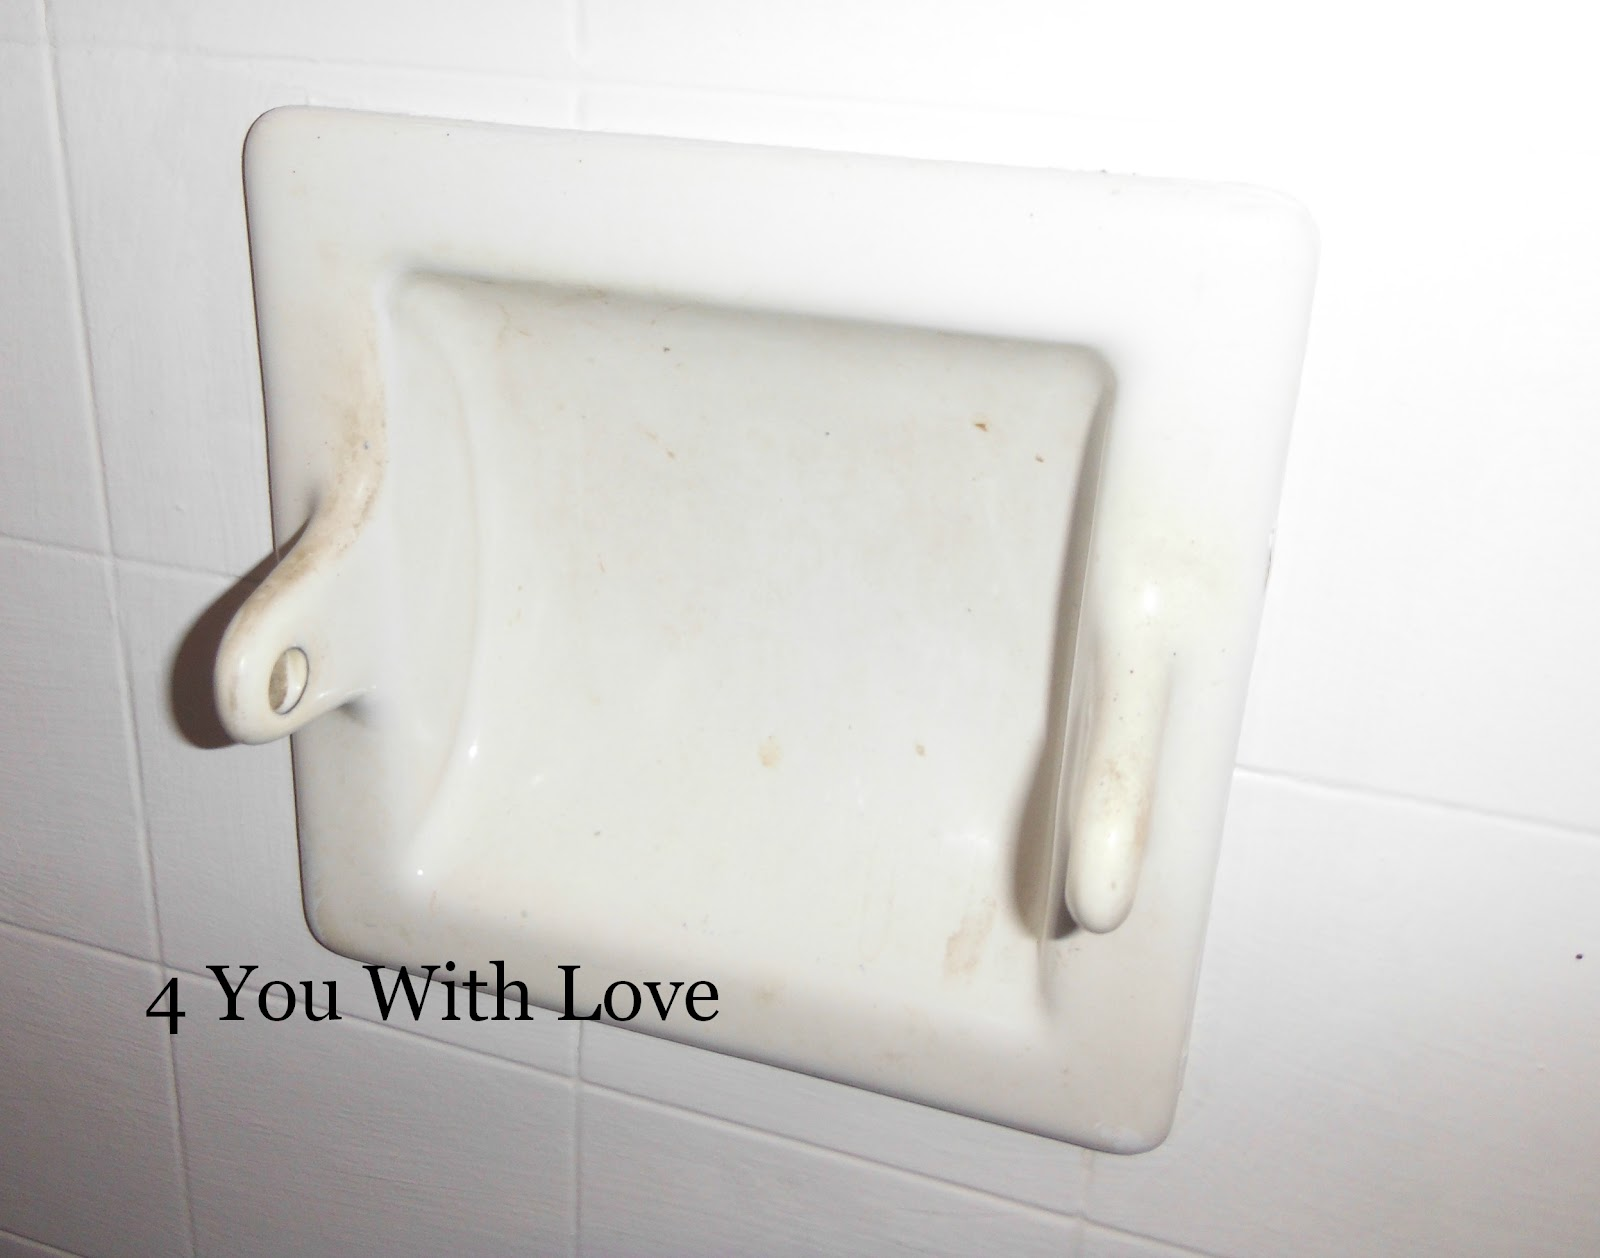 Painting Porcelain Bathroom Fixtures 4 You With Love